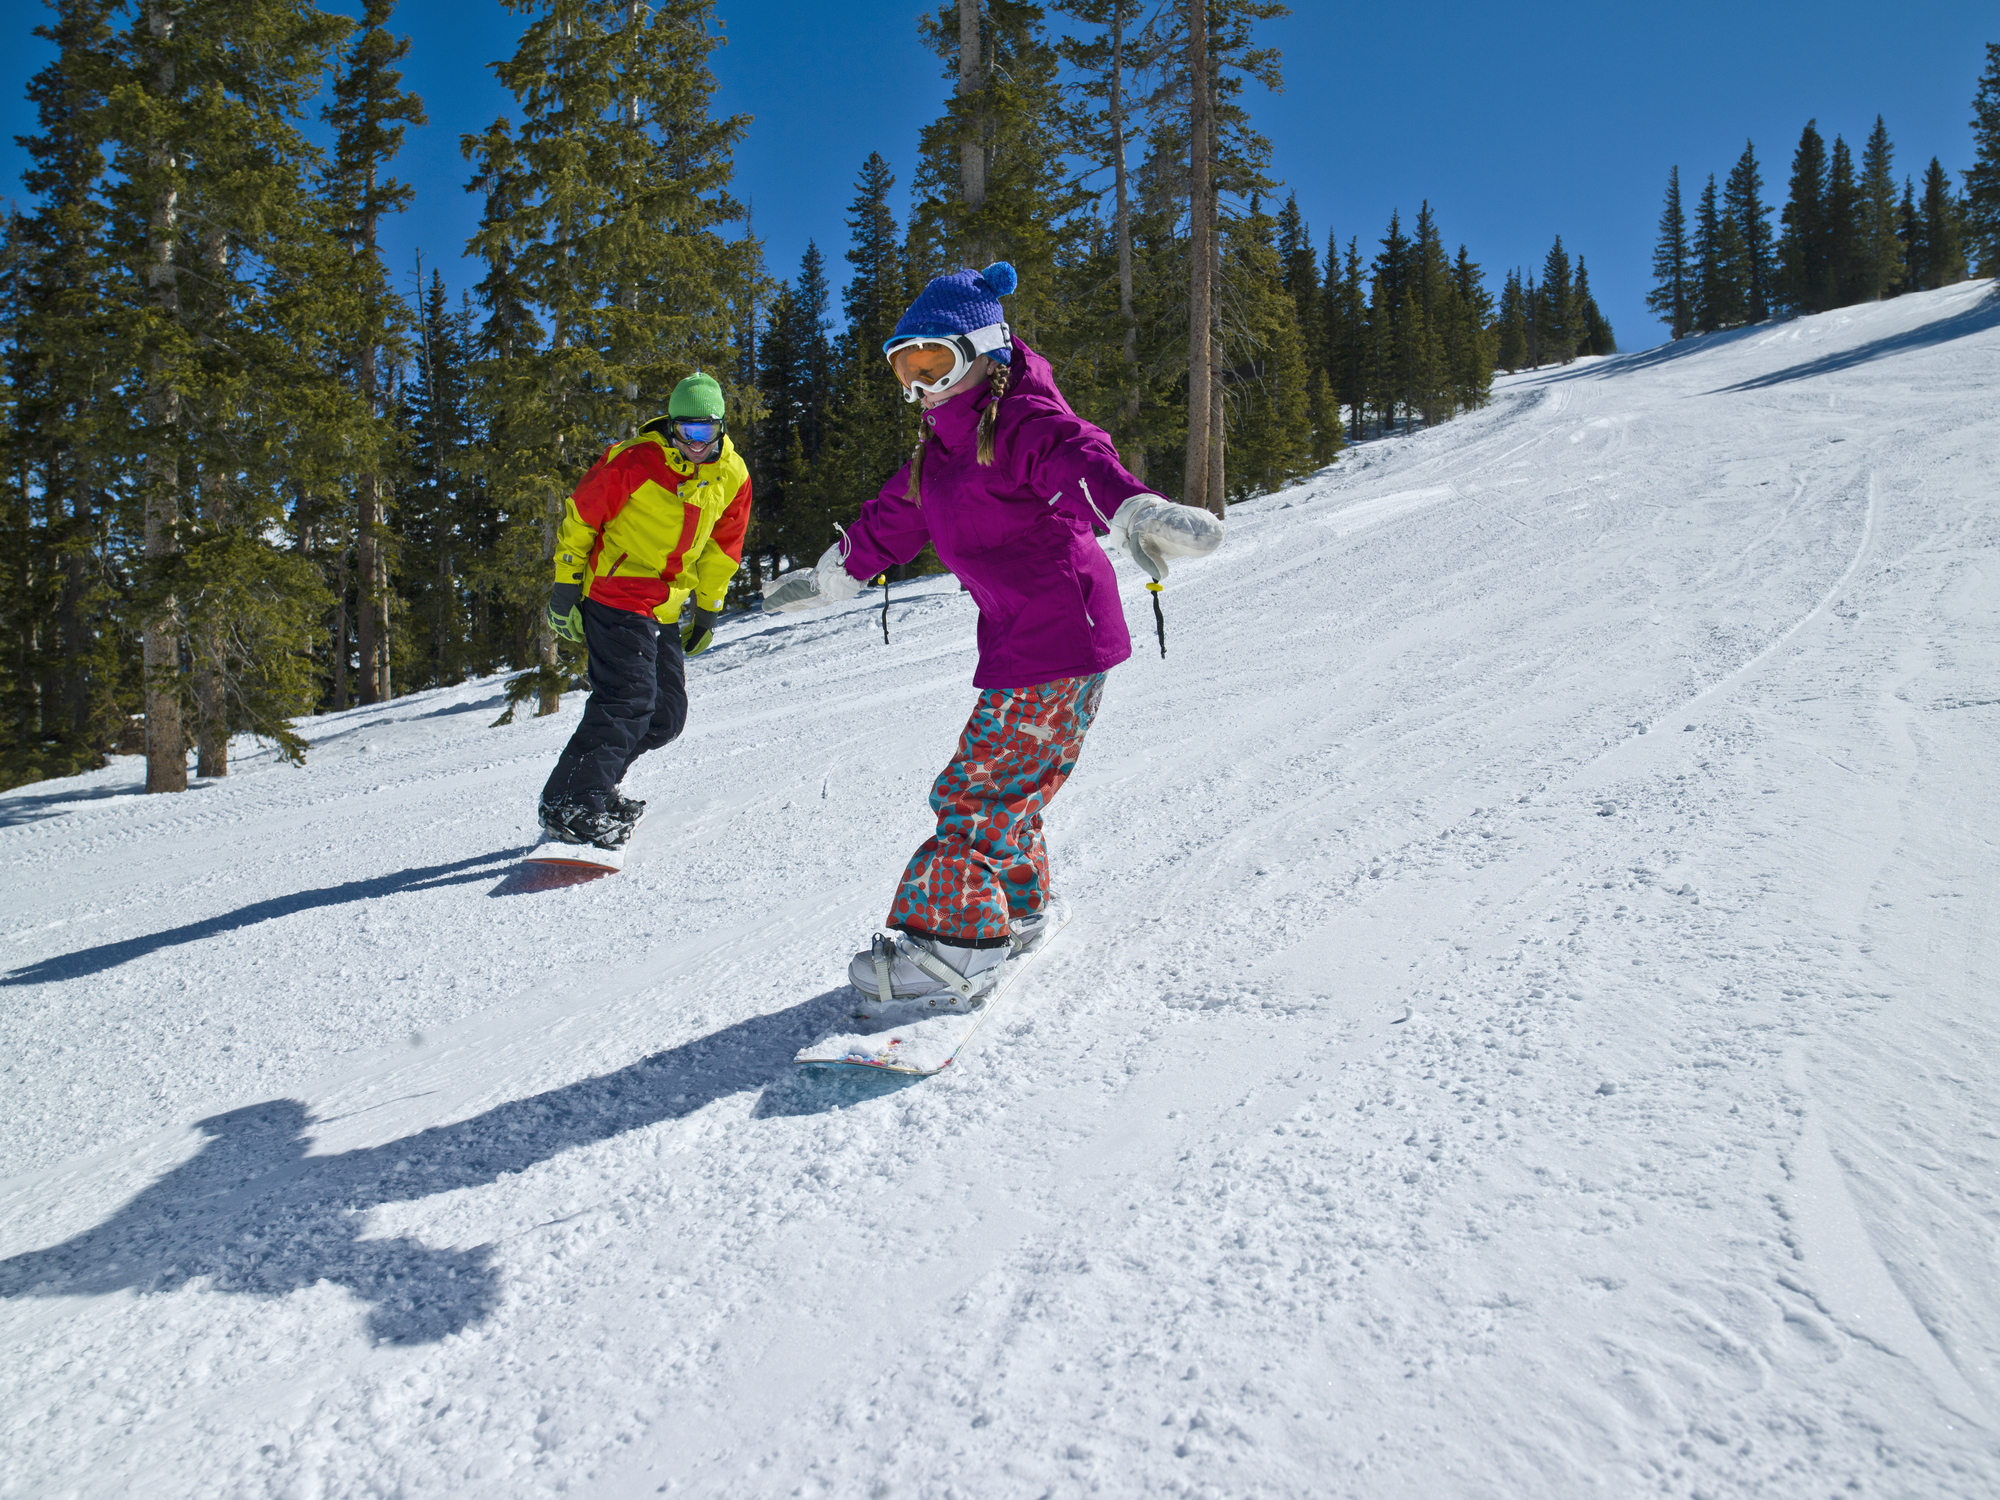 Cours particuliers snowboard à partir de 9 ans/ Private snowboard lessons from 9 years old